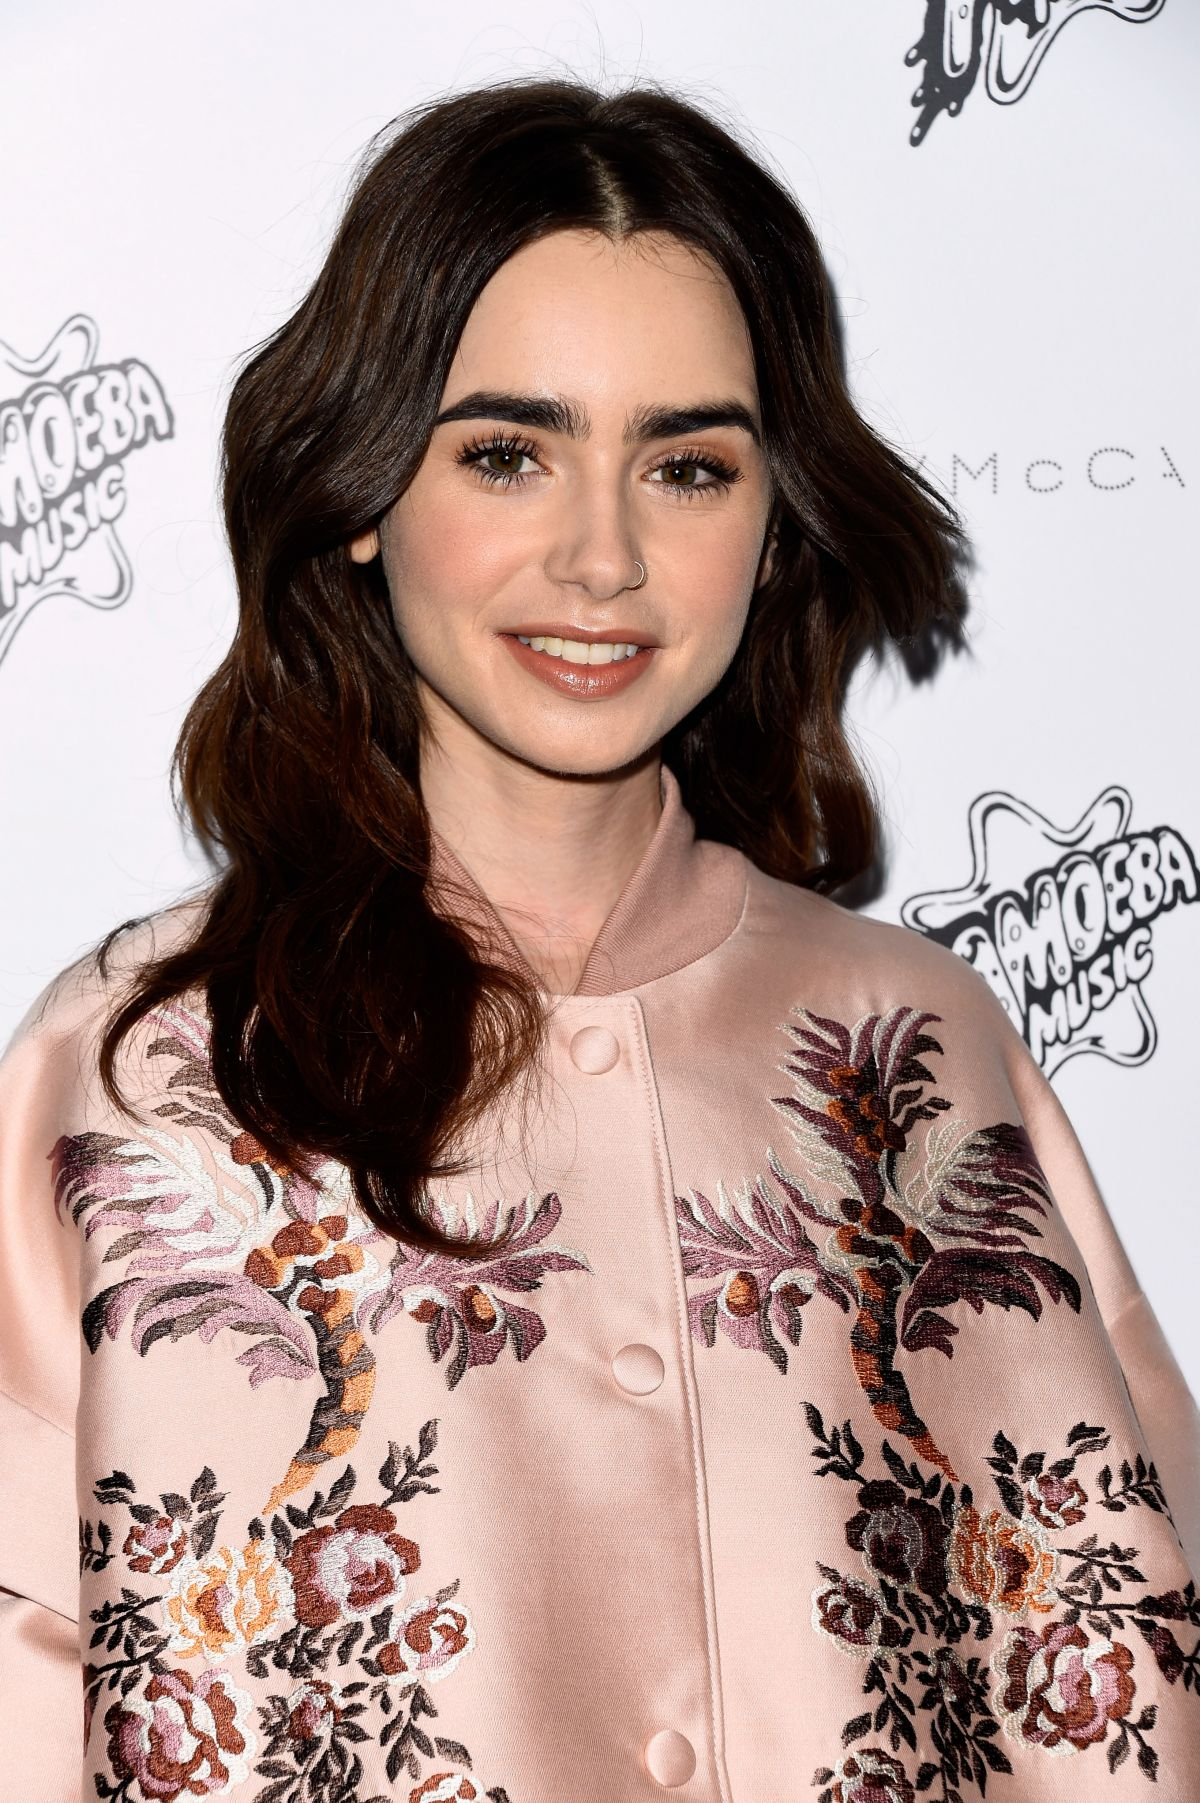 Hollywood Star Lily Collins Discusses Starring in New Les ...